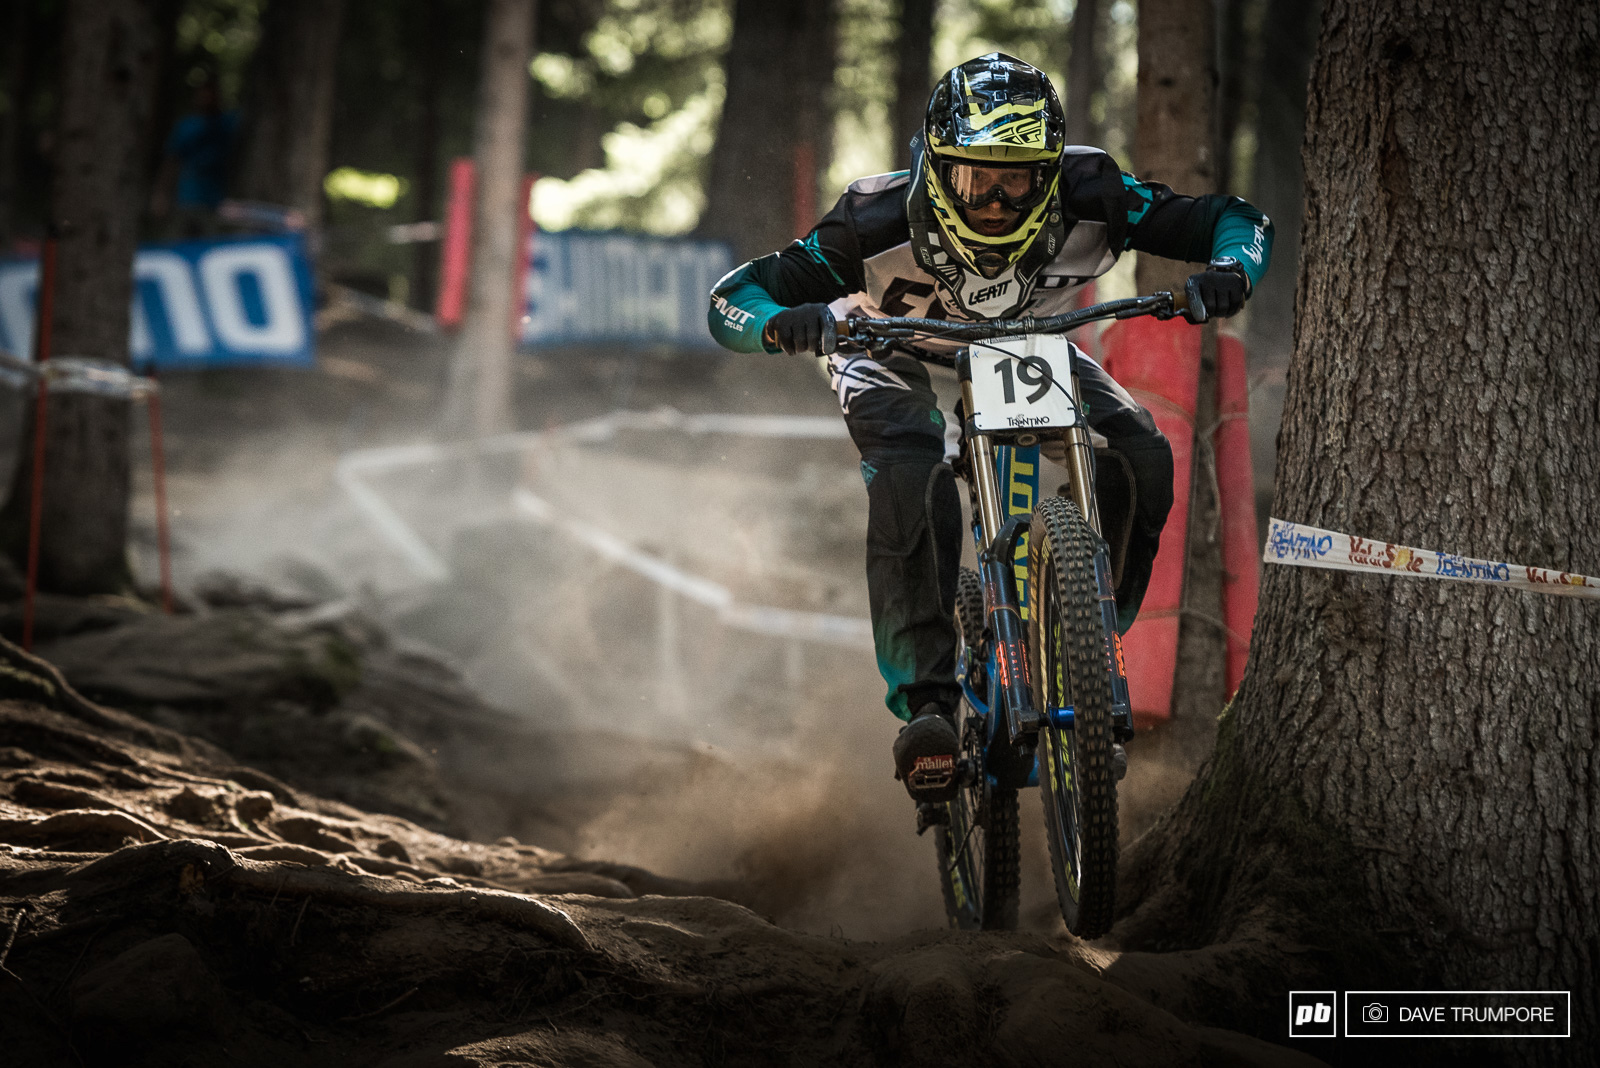 Bernard Kerr took to track today after Gee Atherton backed out of the race due to injury.